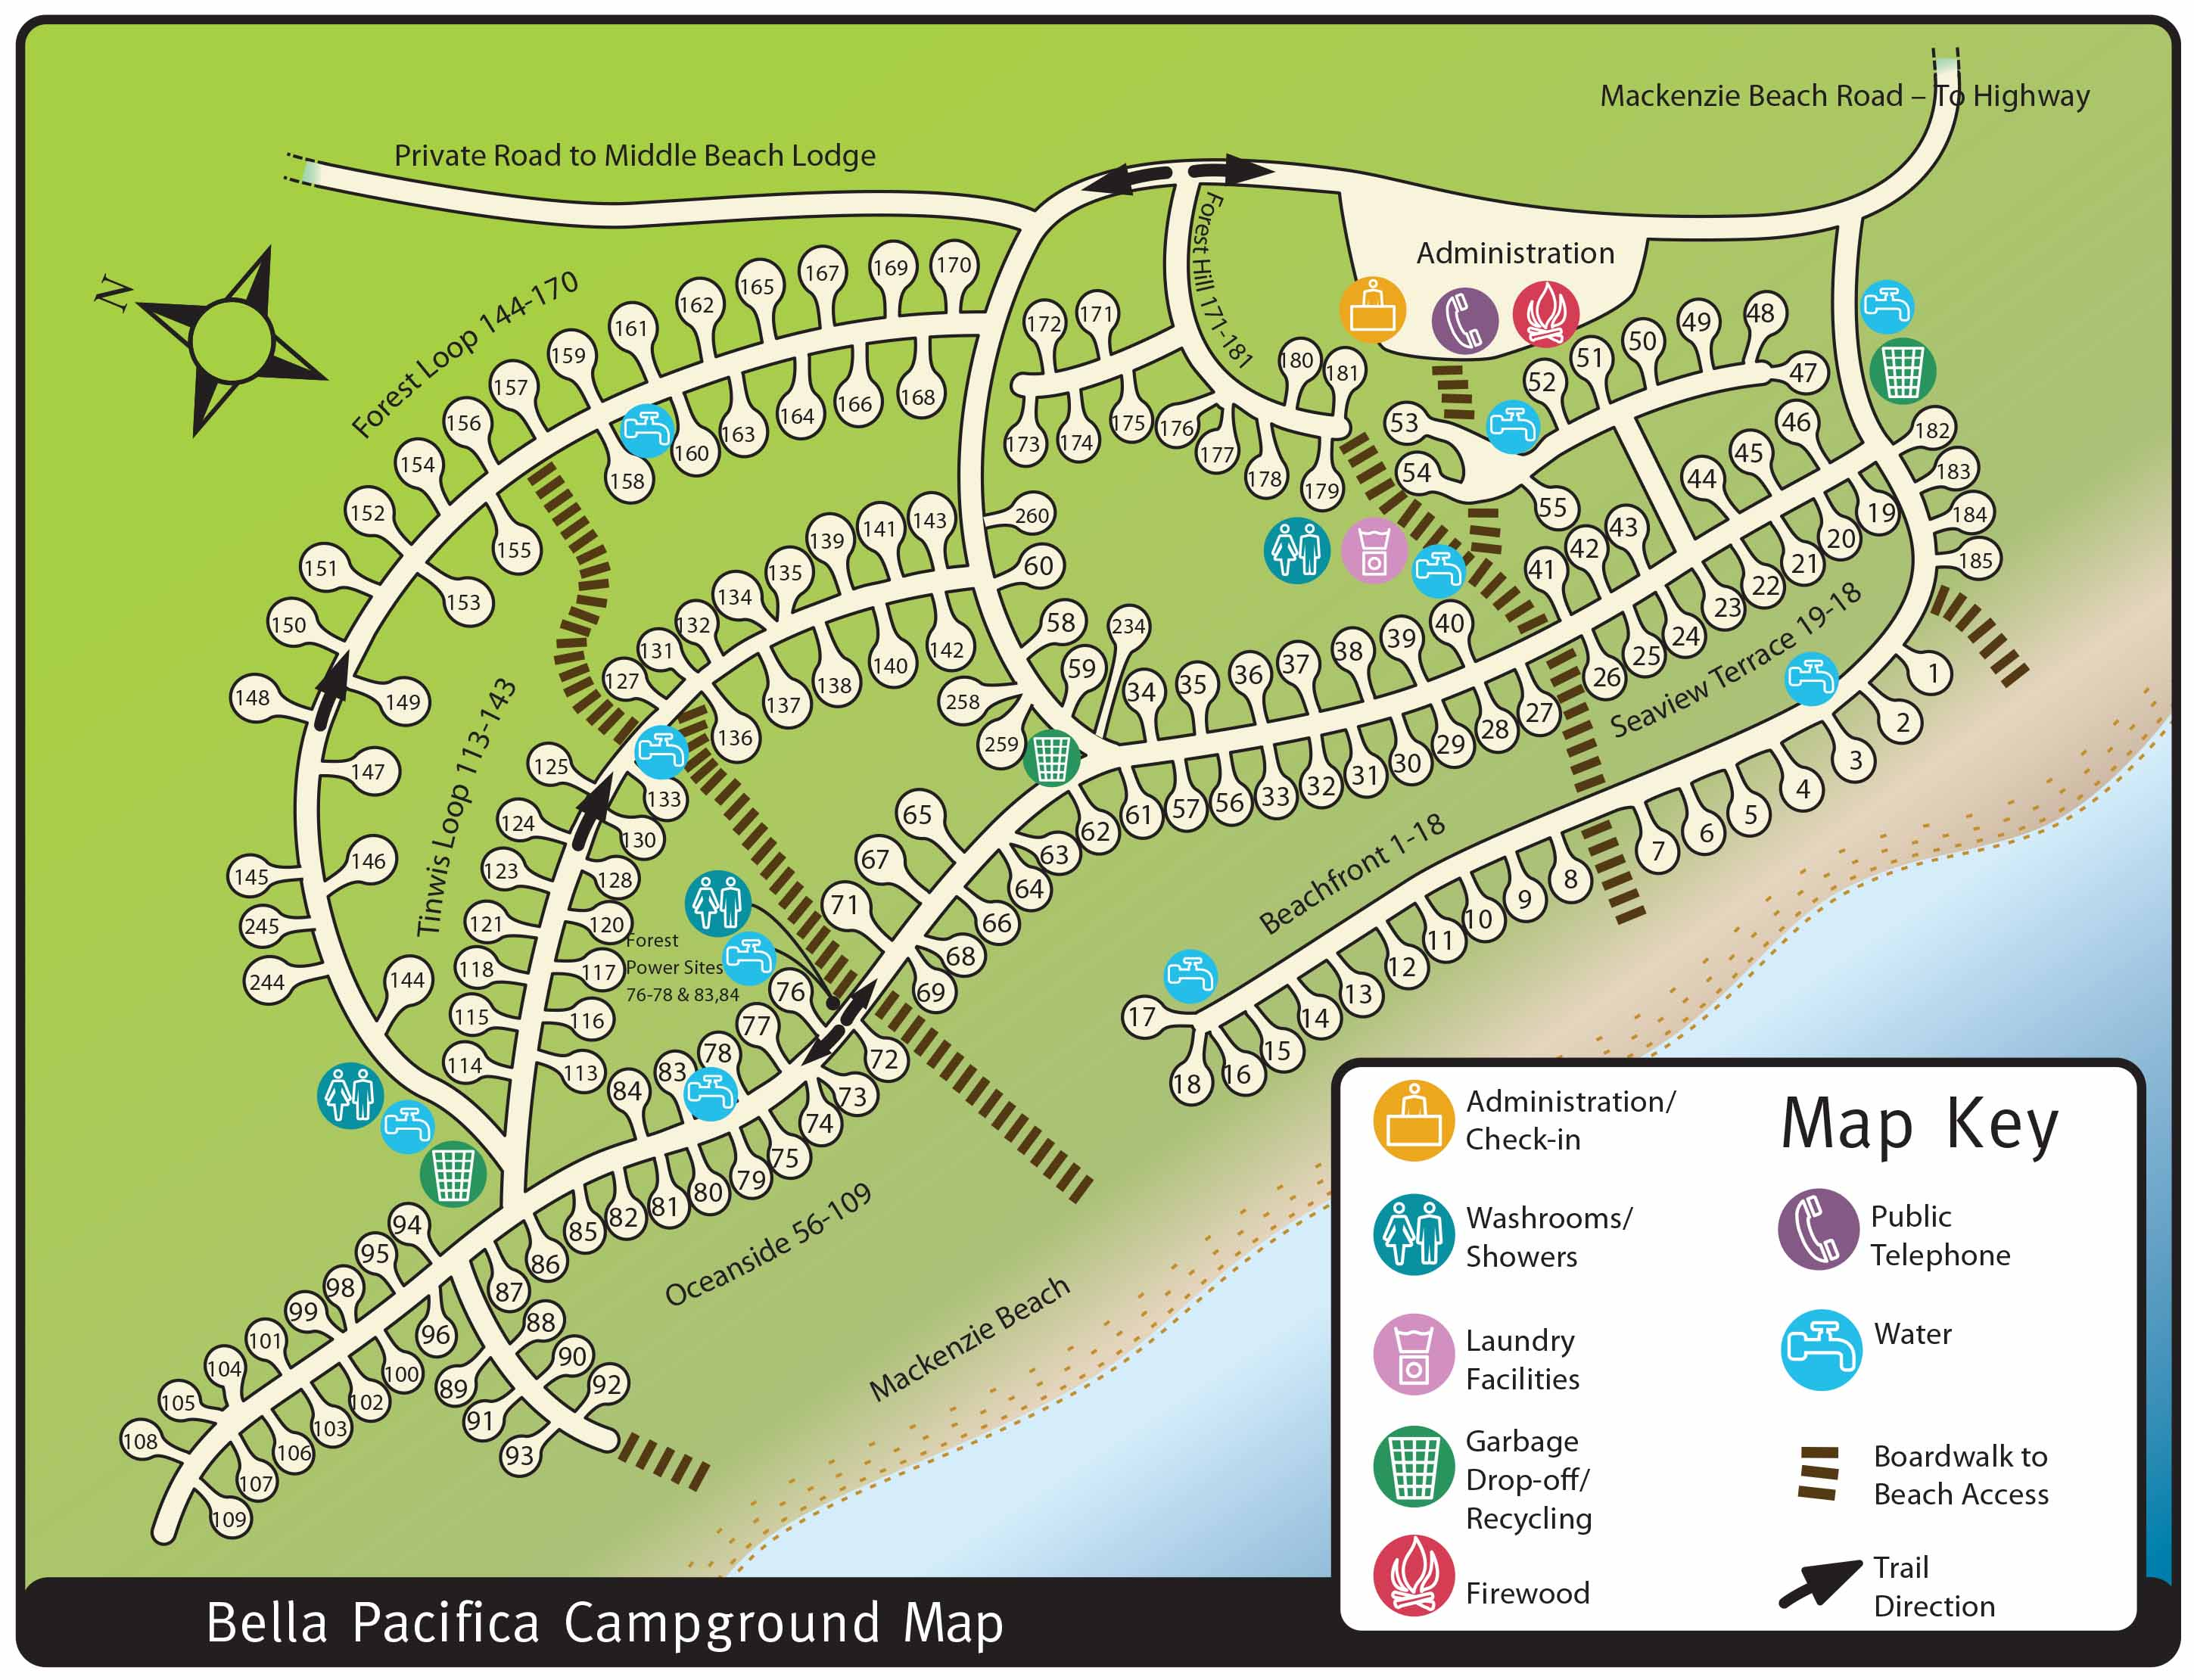 Bella Pacifica Campground Map